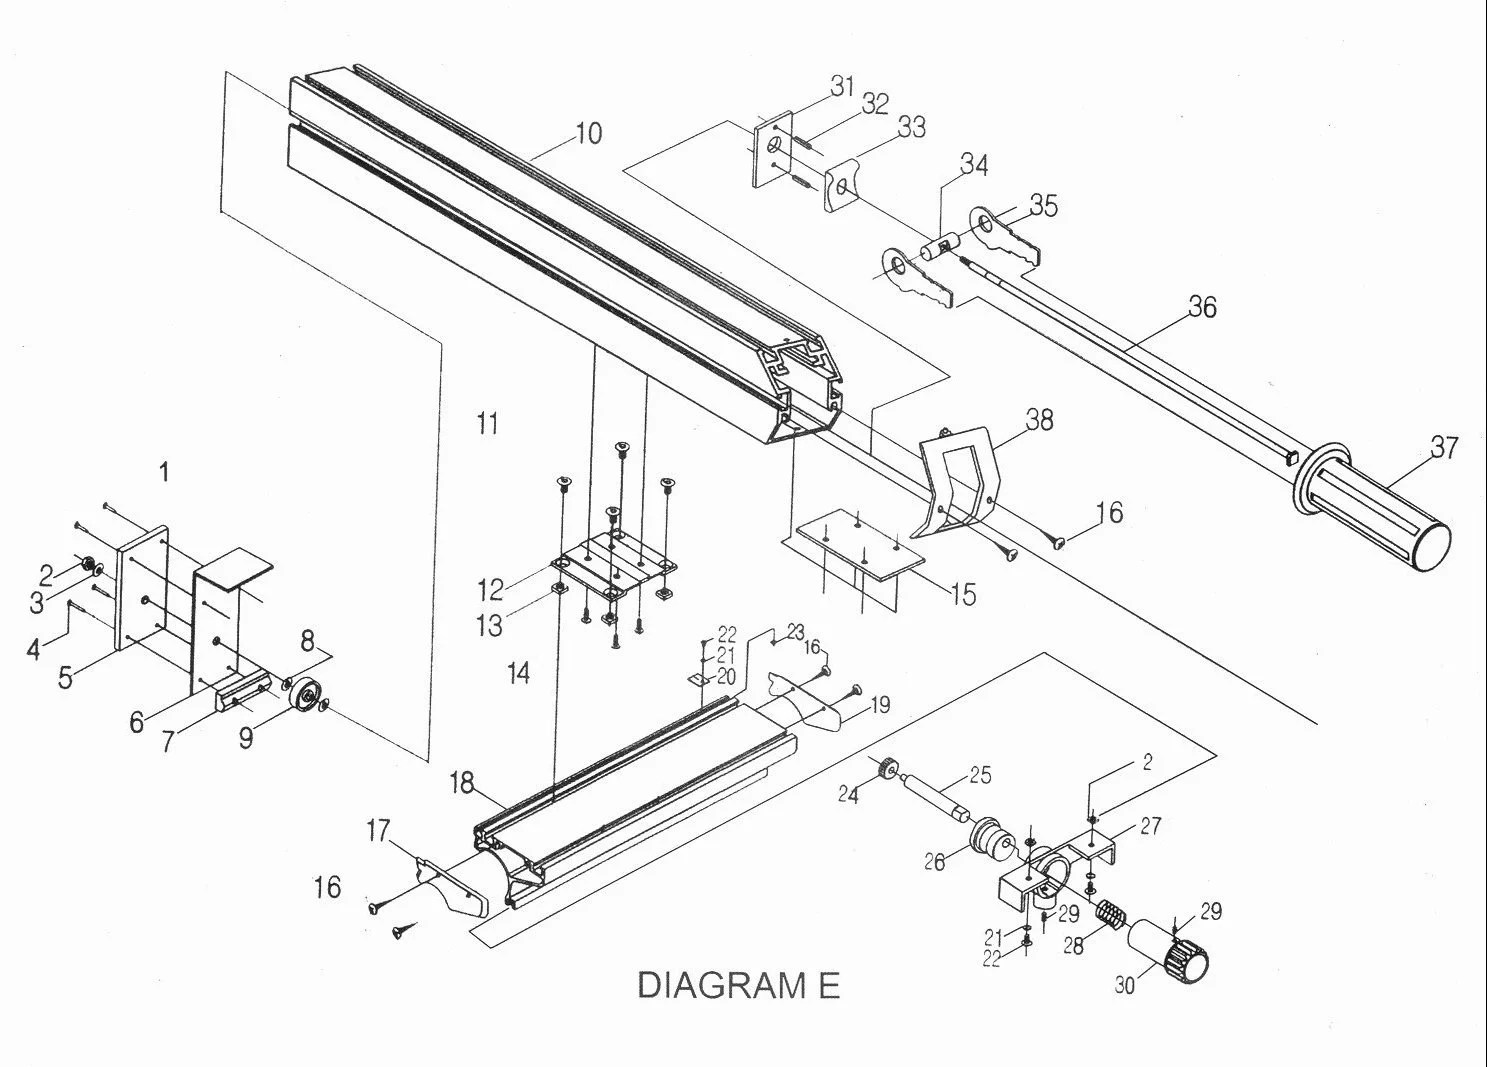 Sip 10 Heavy Duty Table Saw Diagram E